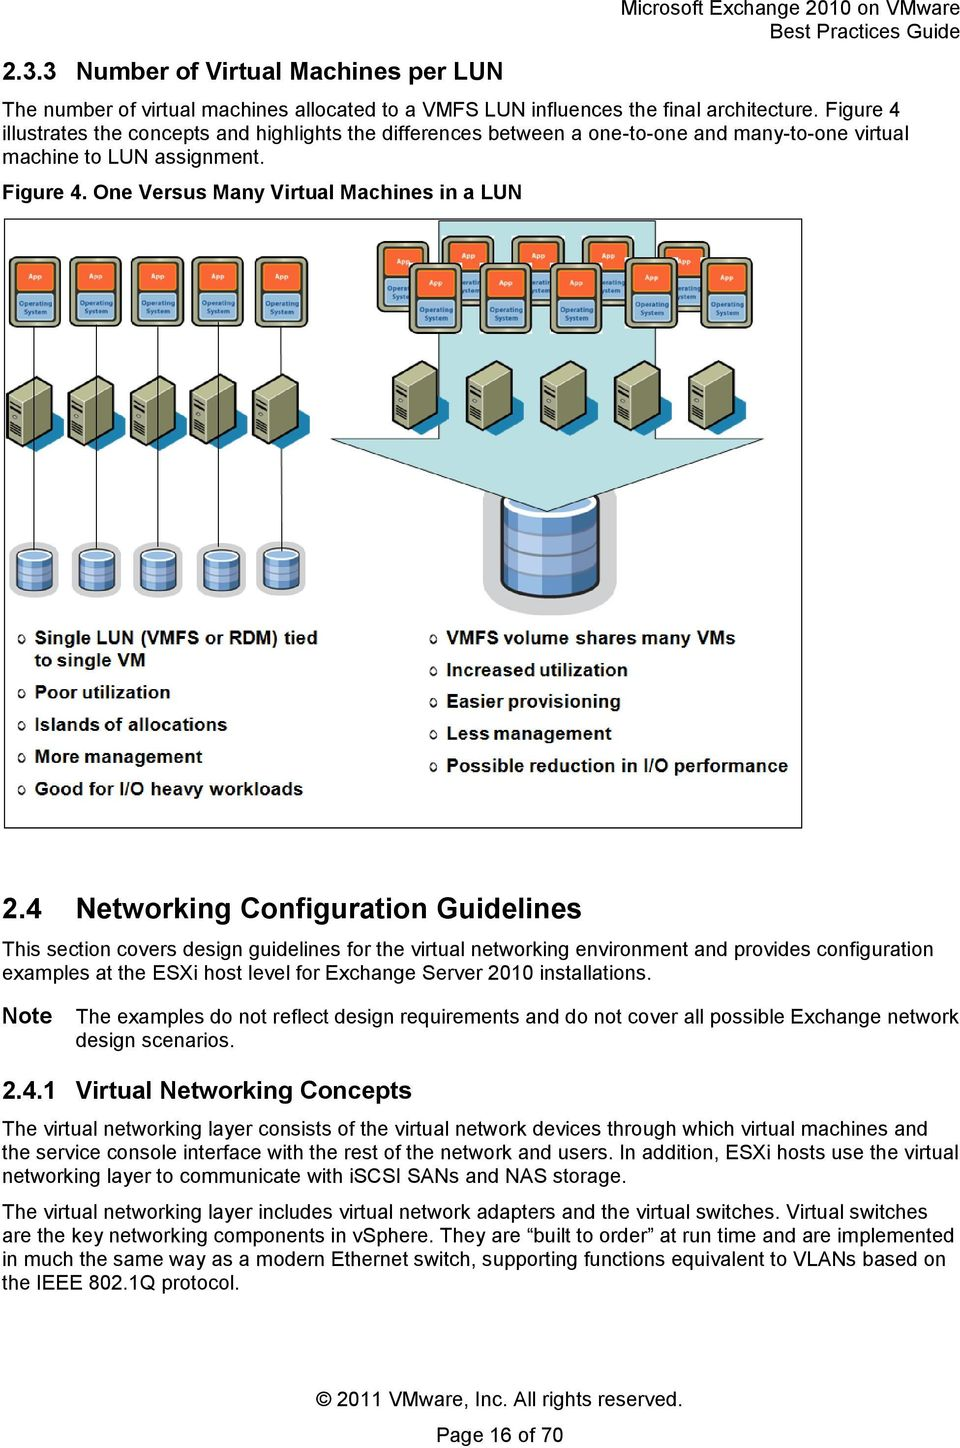 4 Networking Configuration Guidelines This section covers design guidelines for the virtual networking environment and provides configuration examples at the ESXi host level for Exchange Server 2010